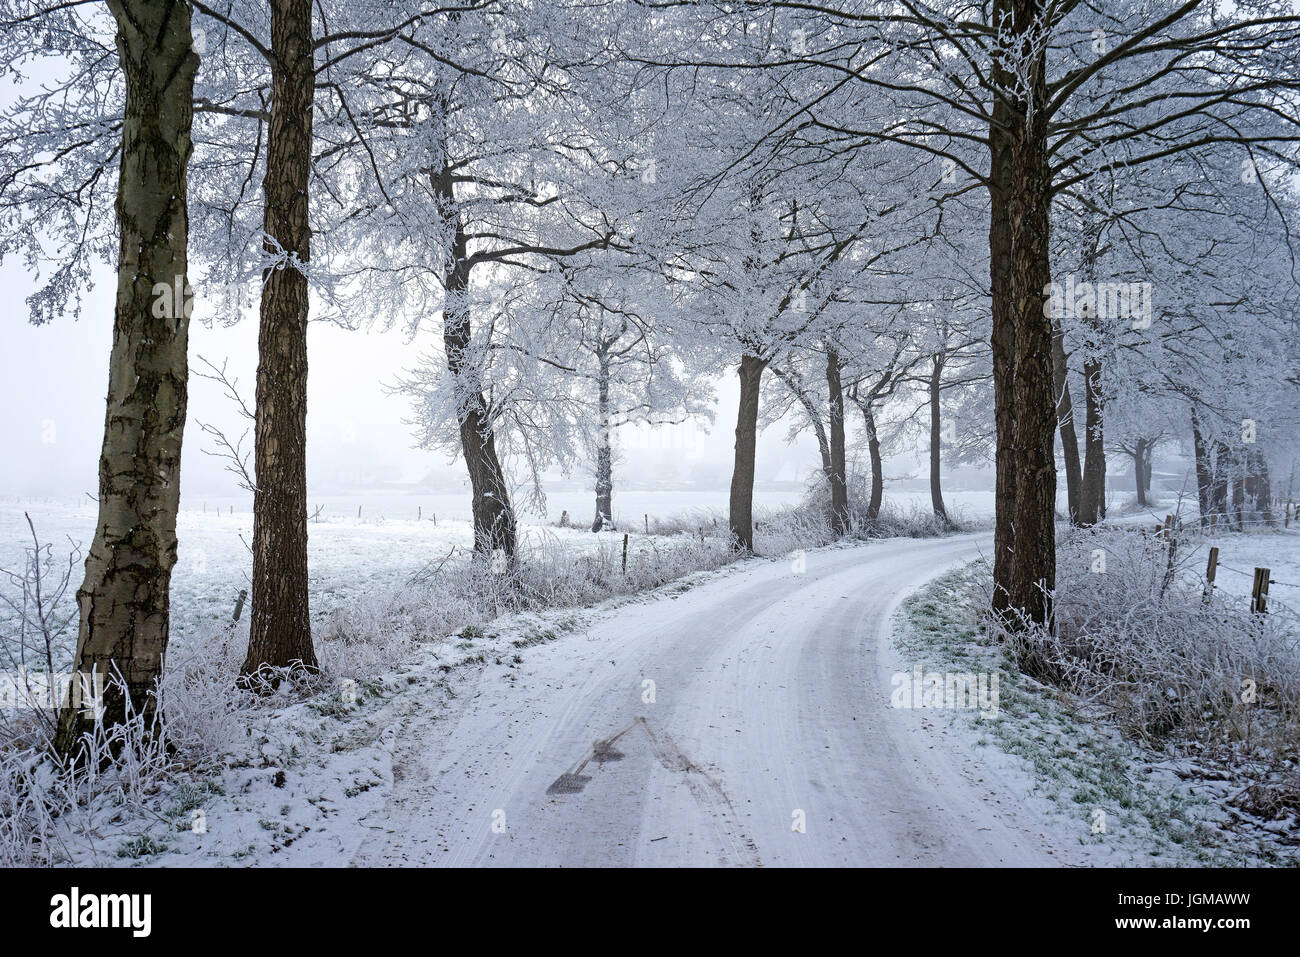 The Federal Republic of Germany, Lower Saxony, East Friesland, snow, ice, winter, freezes over, street, way, country - Stock Image